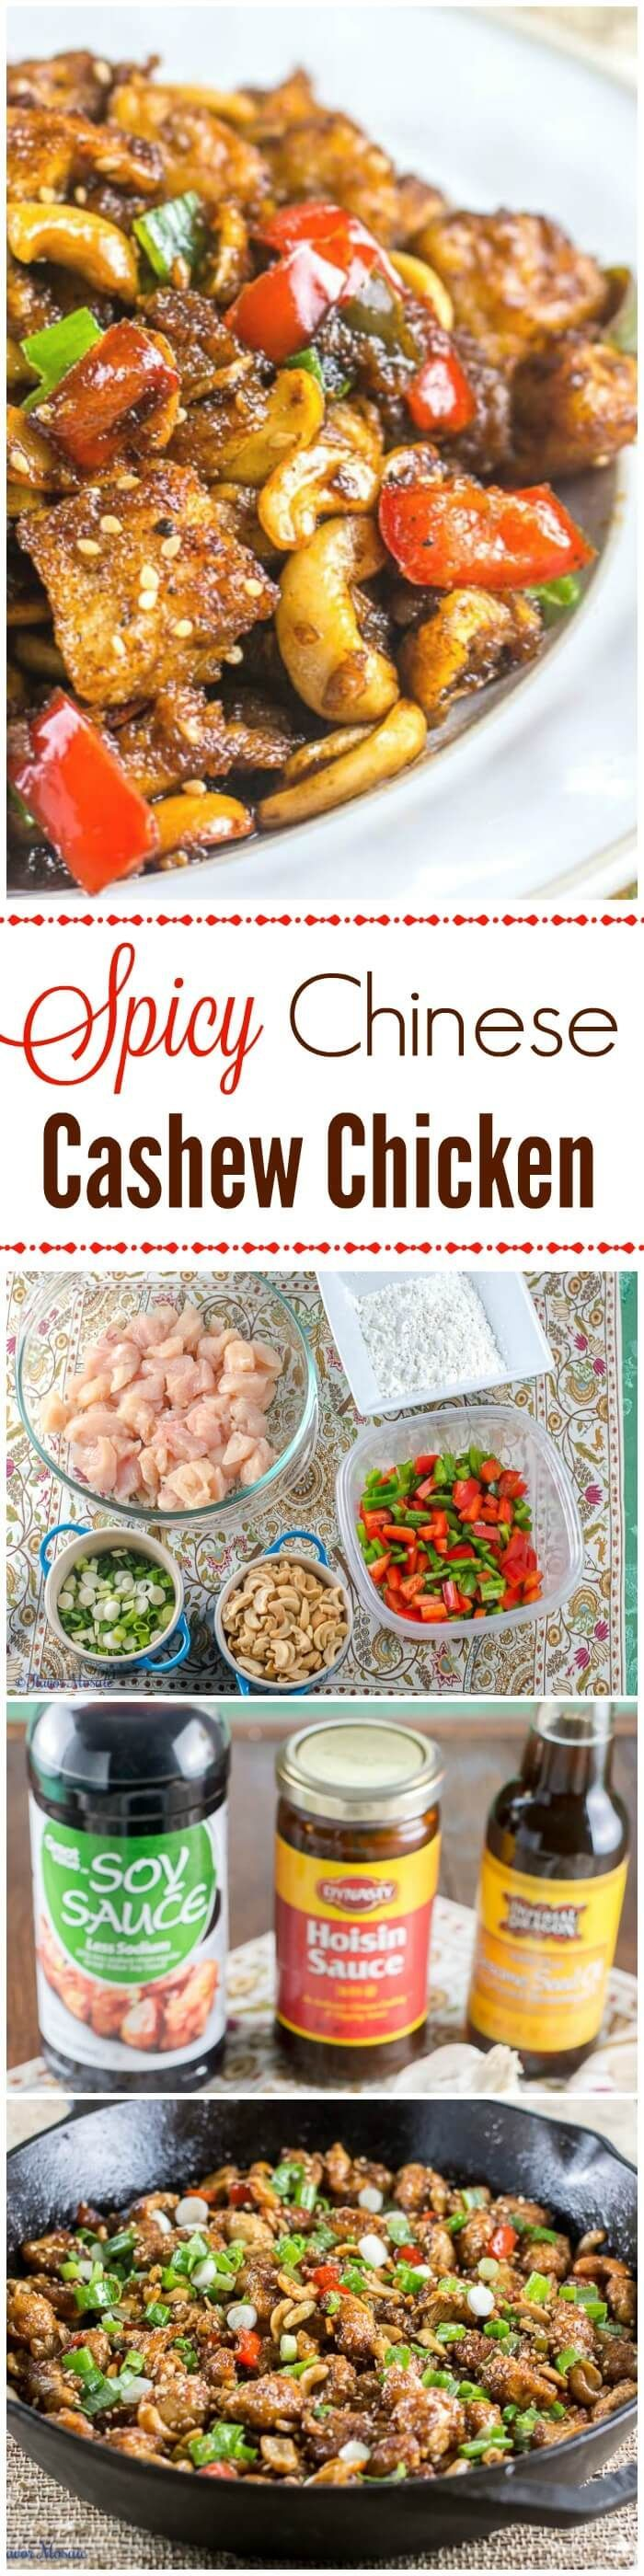 This Spicy Chinese Cashew Chicken recipe is my homemade version of our favorite…